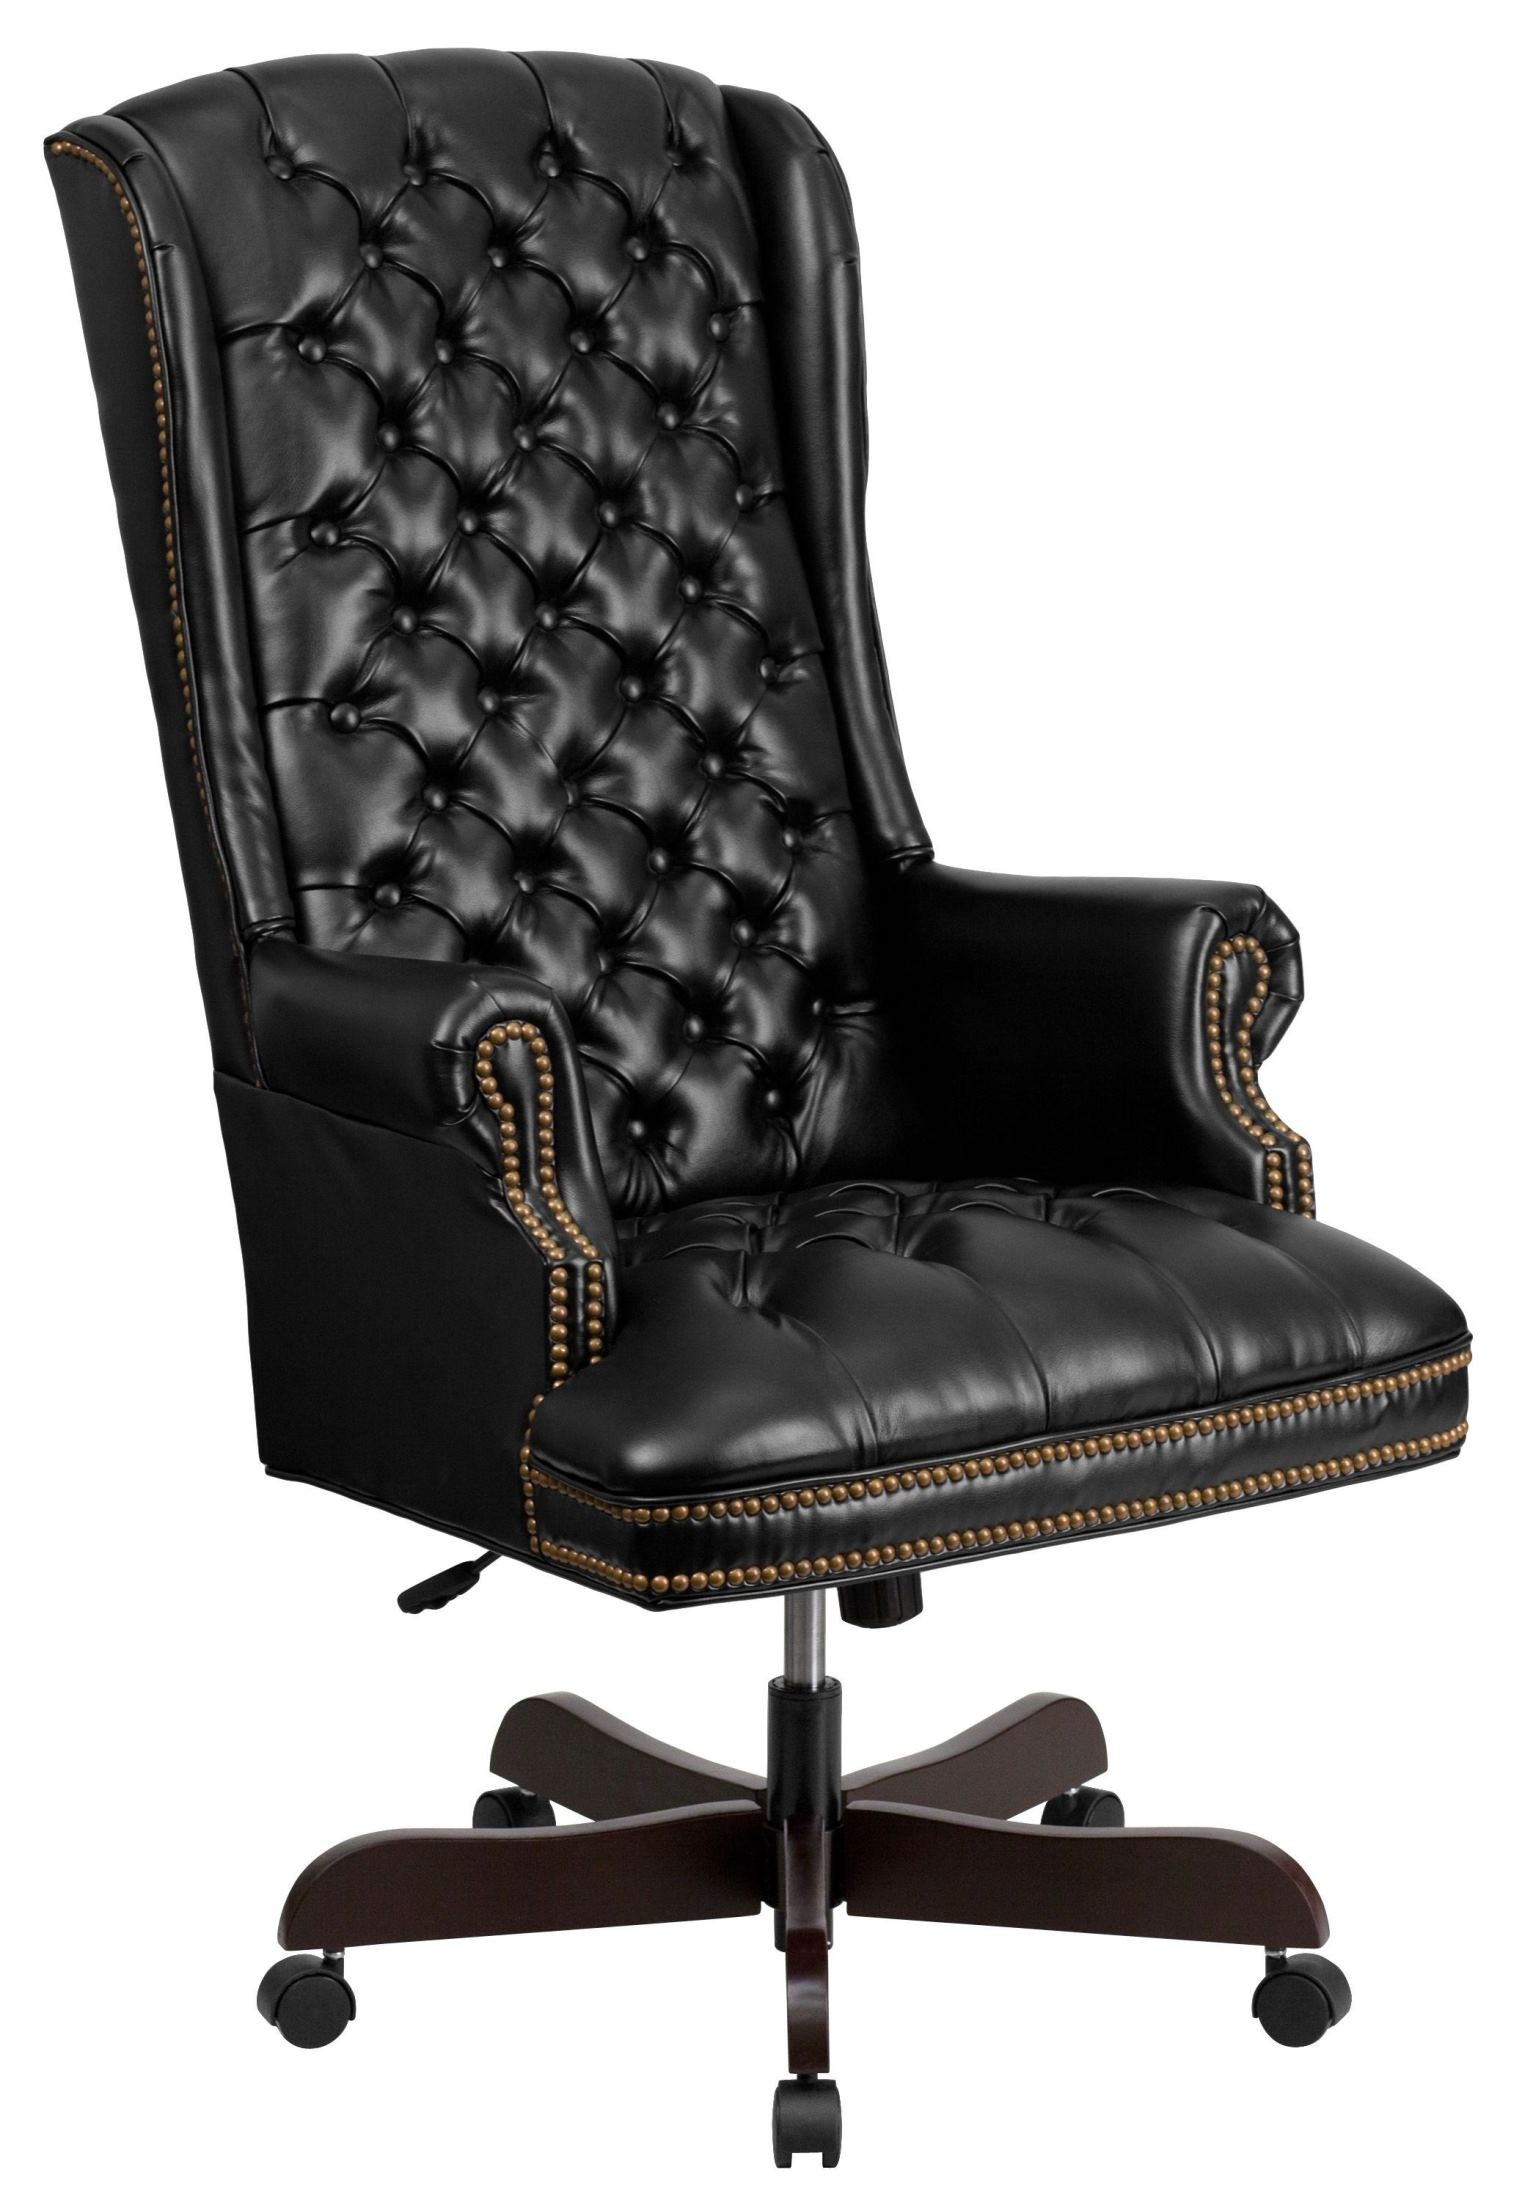 Tufted Leather Chair 360 High Back Tufted Black Leather Executive Office Chair